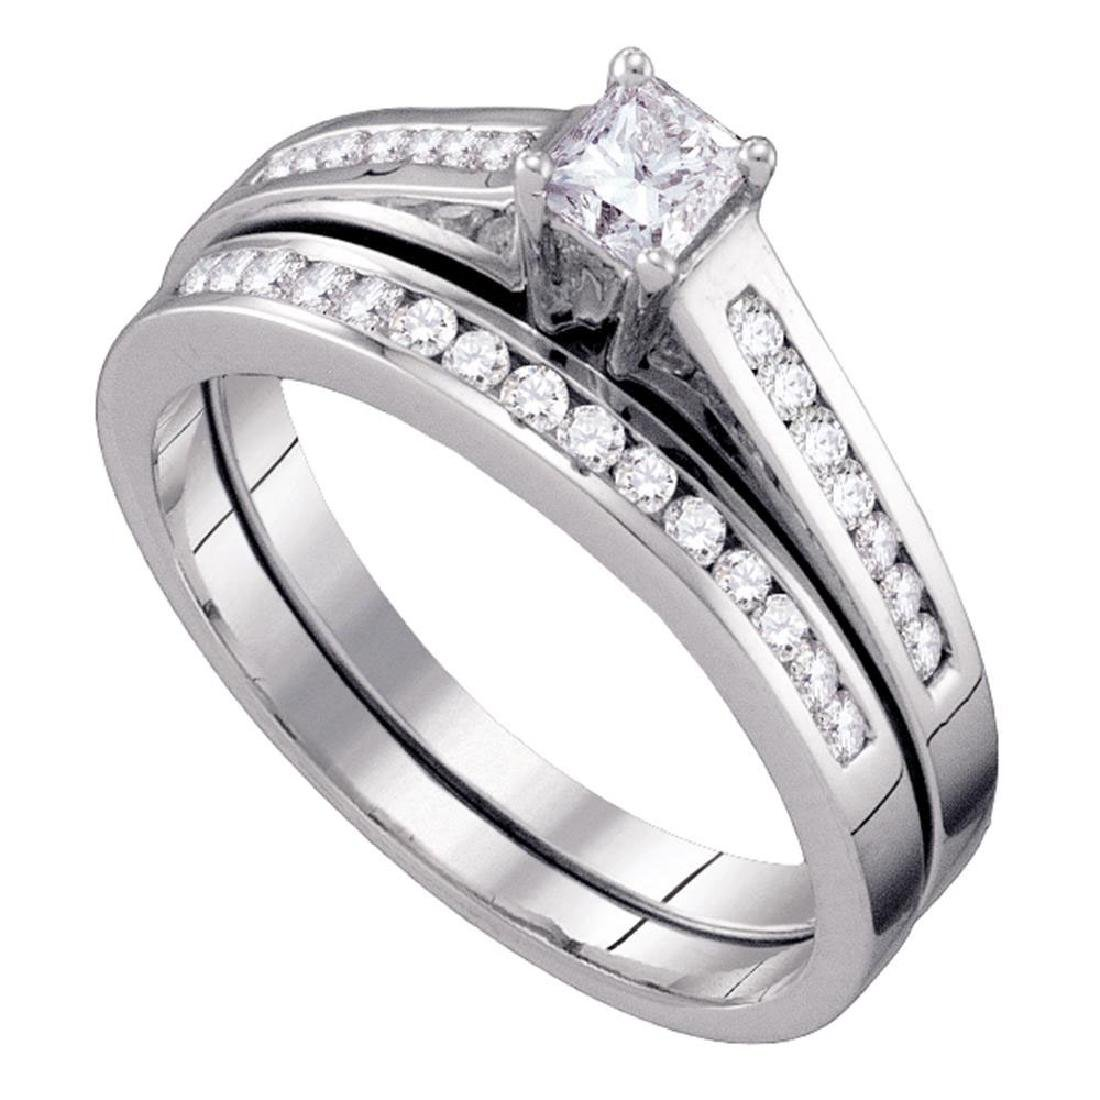 Princess Diamond Bridal Wedding Engagement Ring 10kt